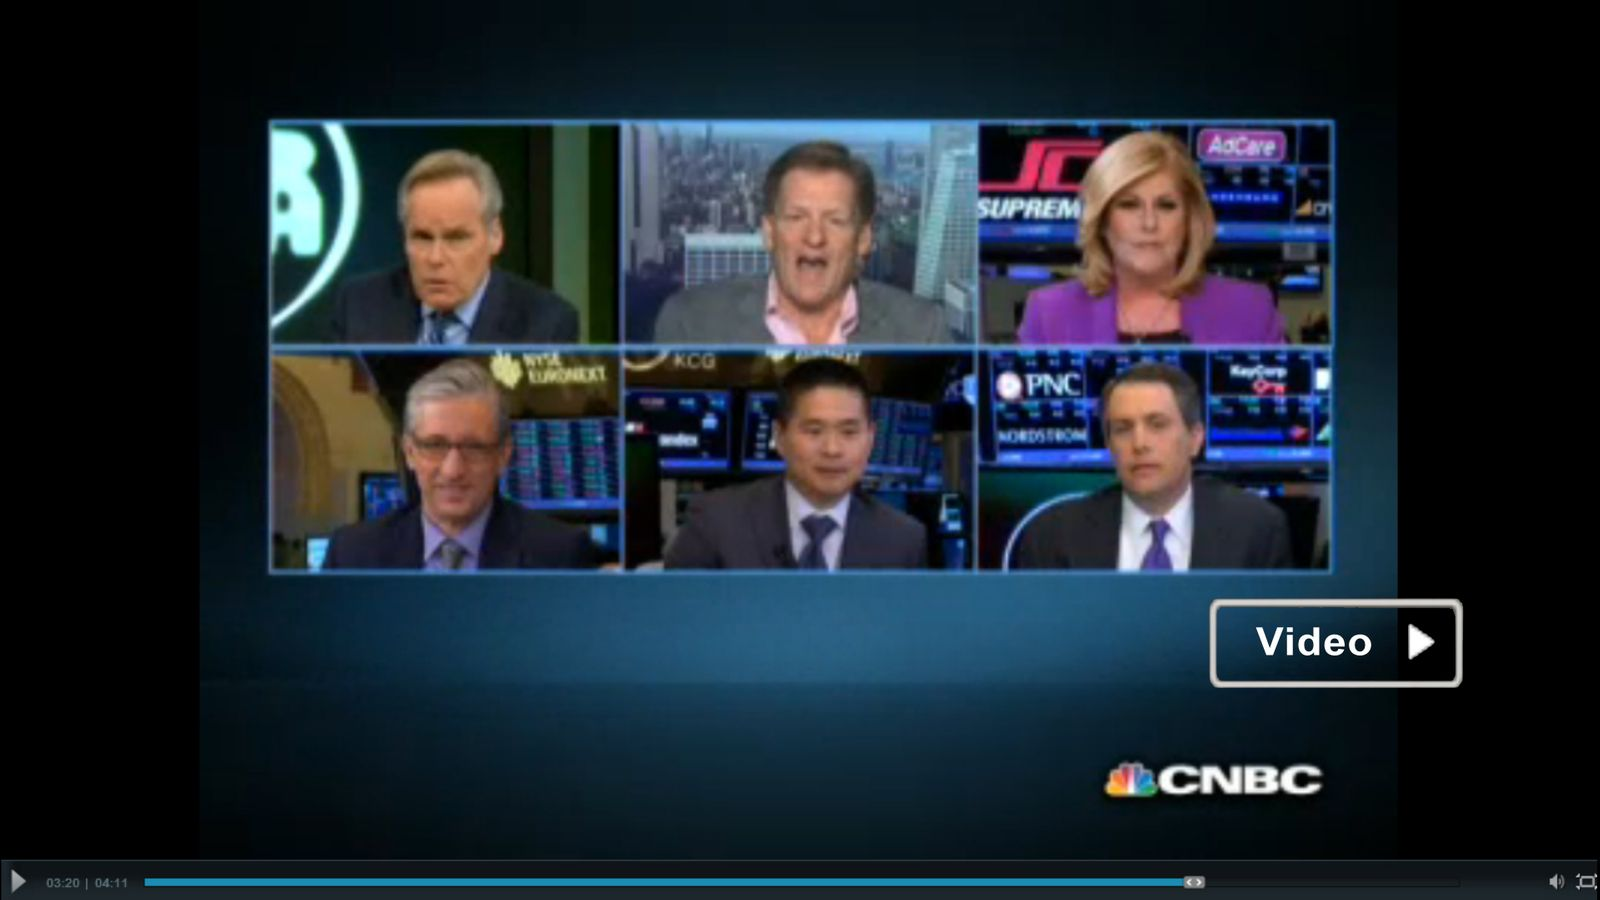 Video / The fight that stopped NYSE trading